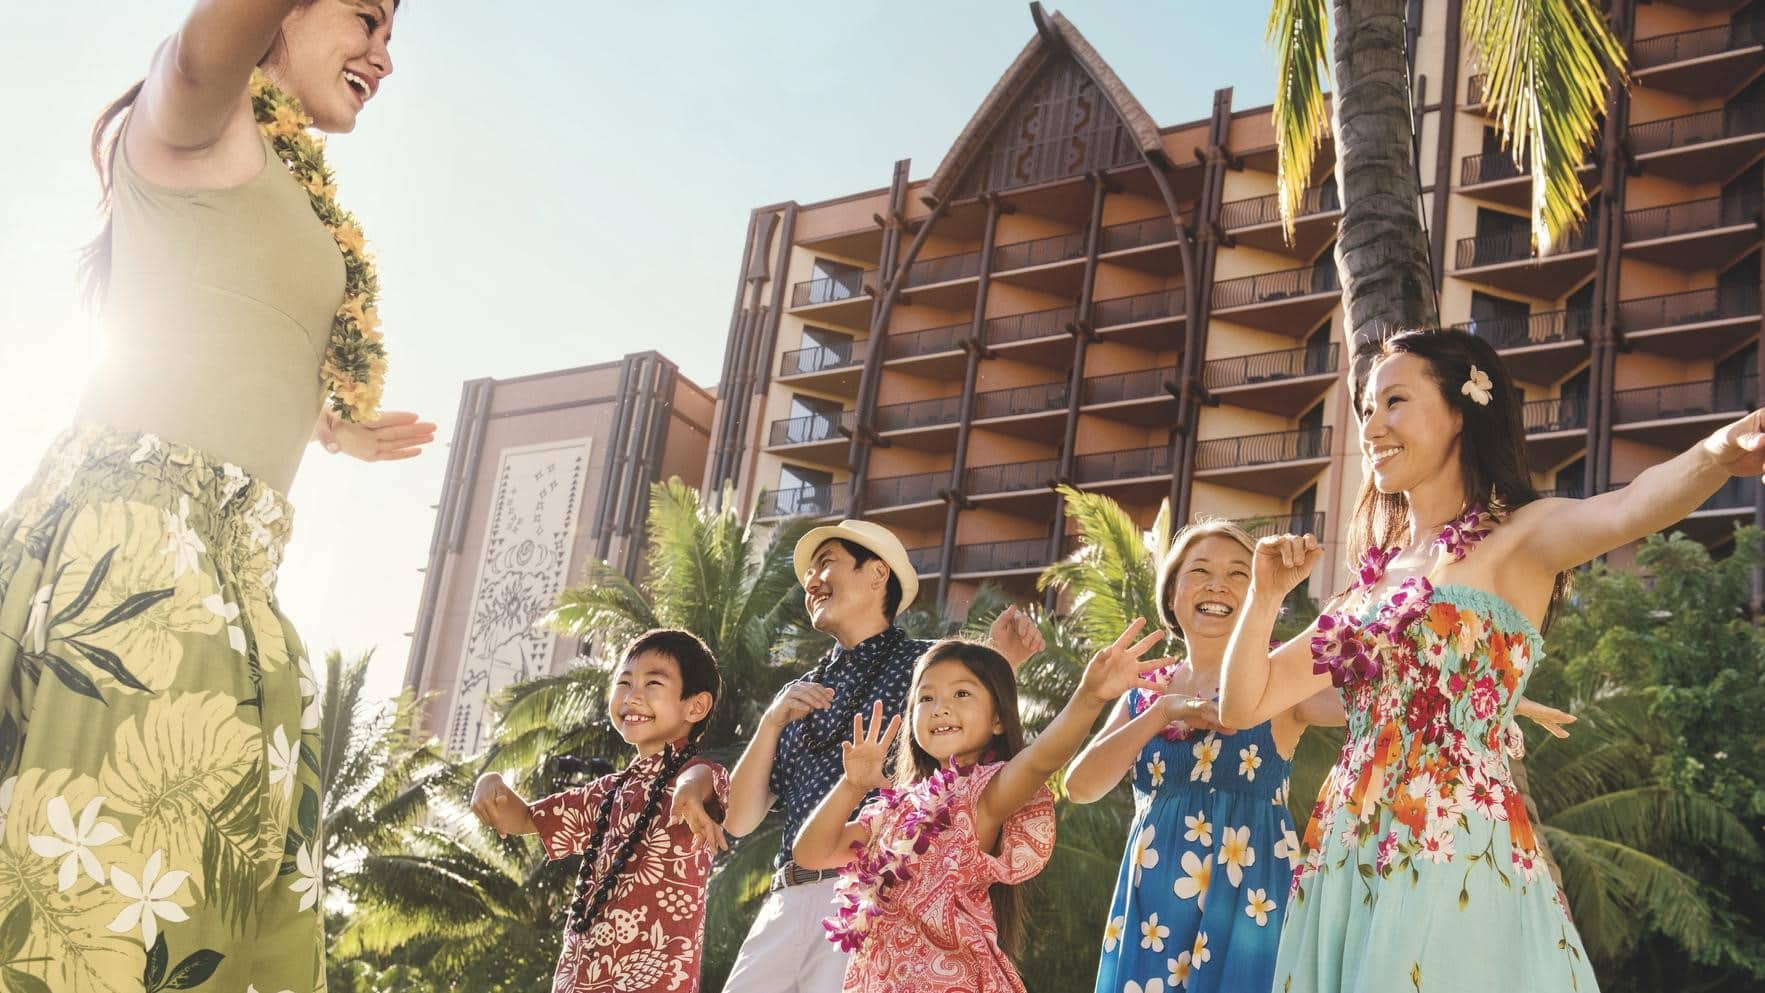 A cast member and a family dancing with the towers of Aulani resort in the background